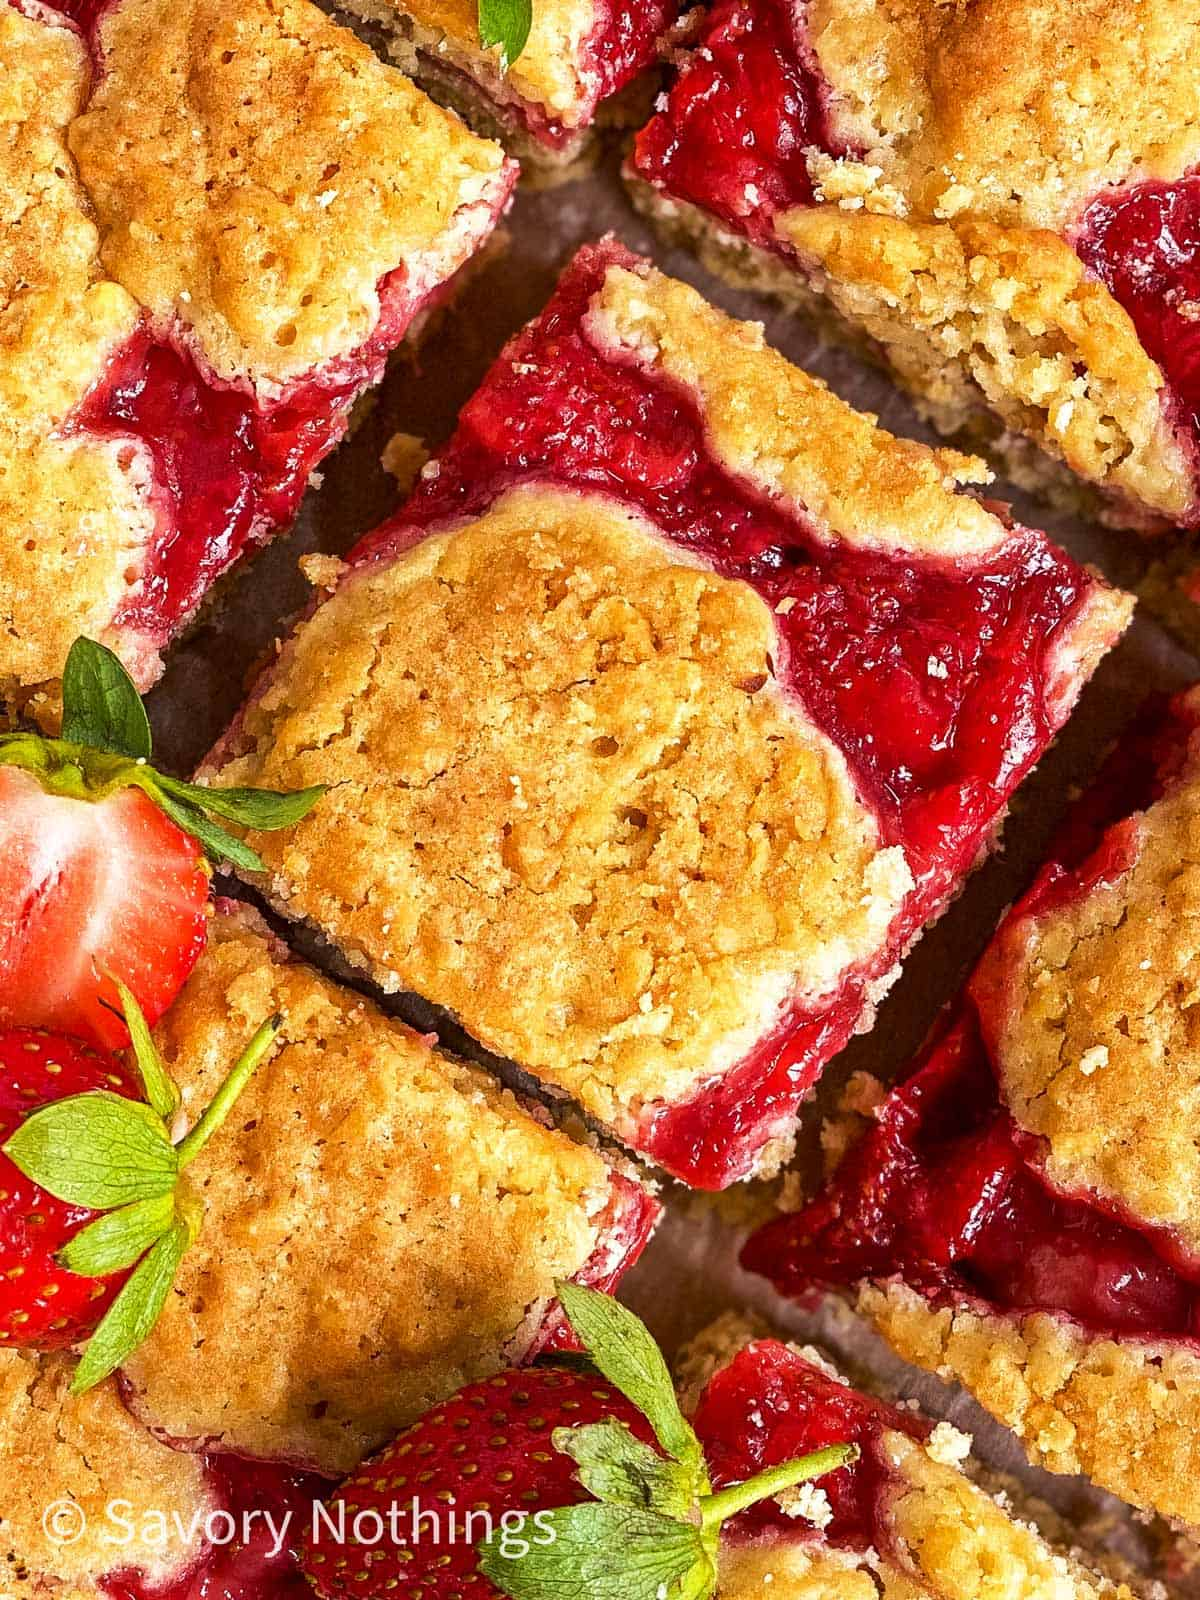 overhead close up view of sliced strawberry oatmeal bars garnished with fresh strawberries